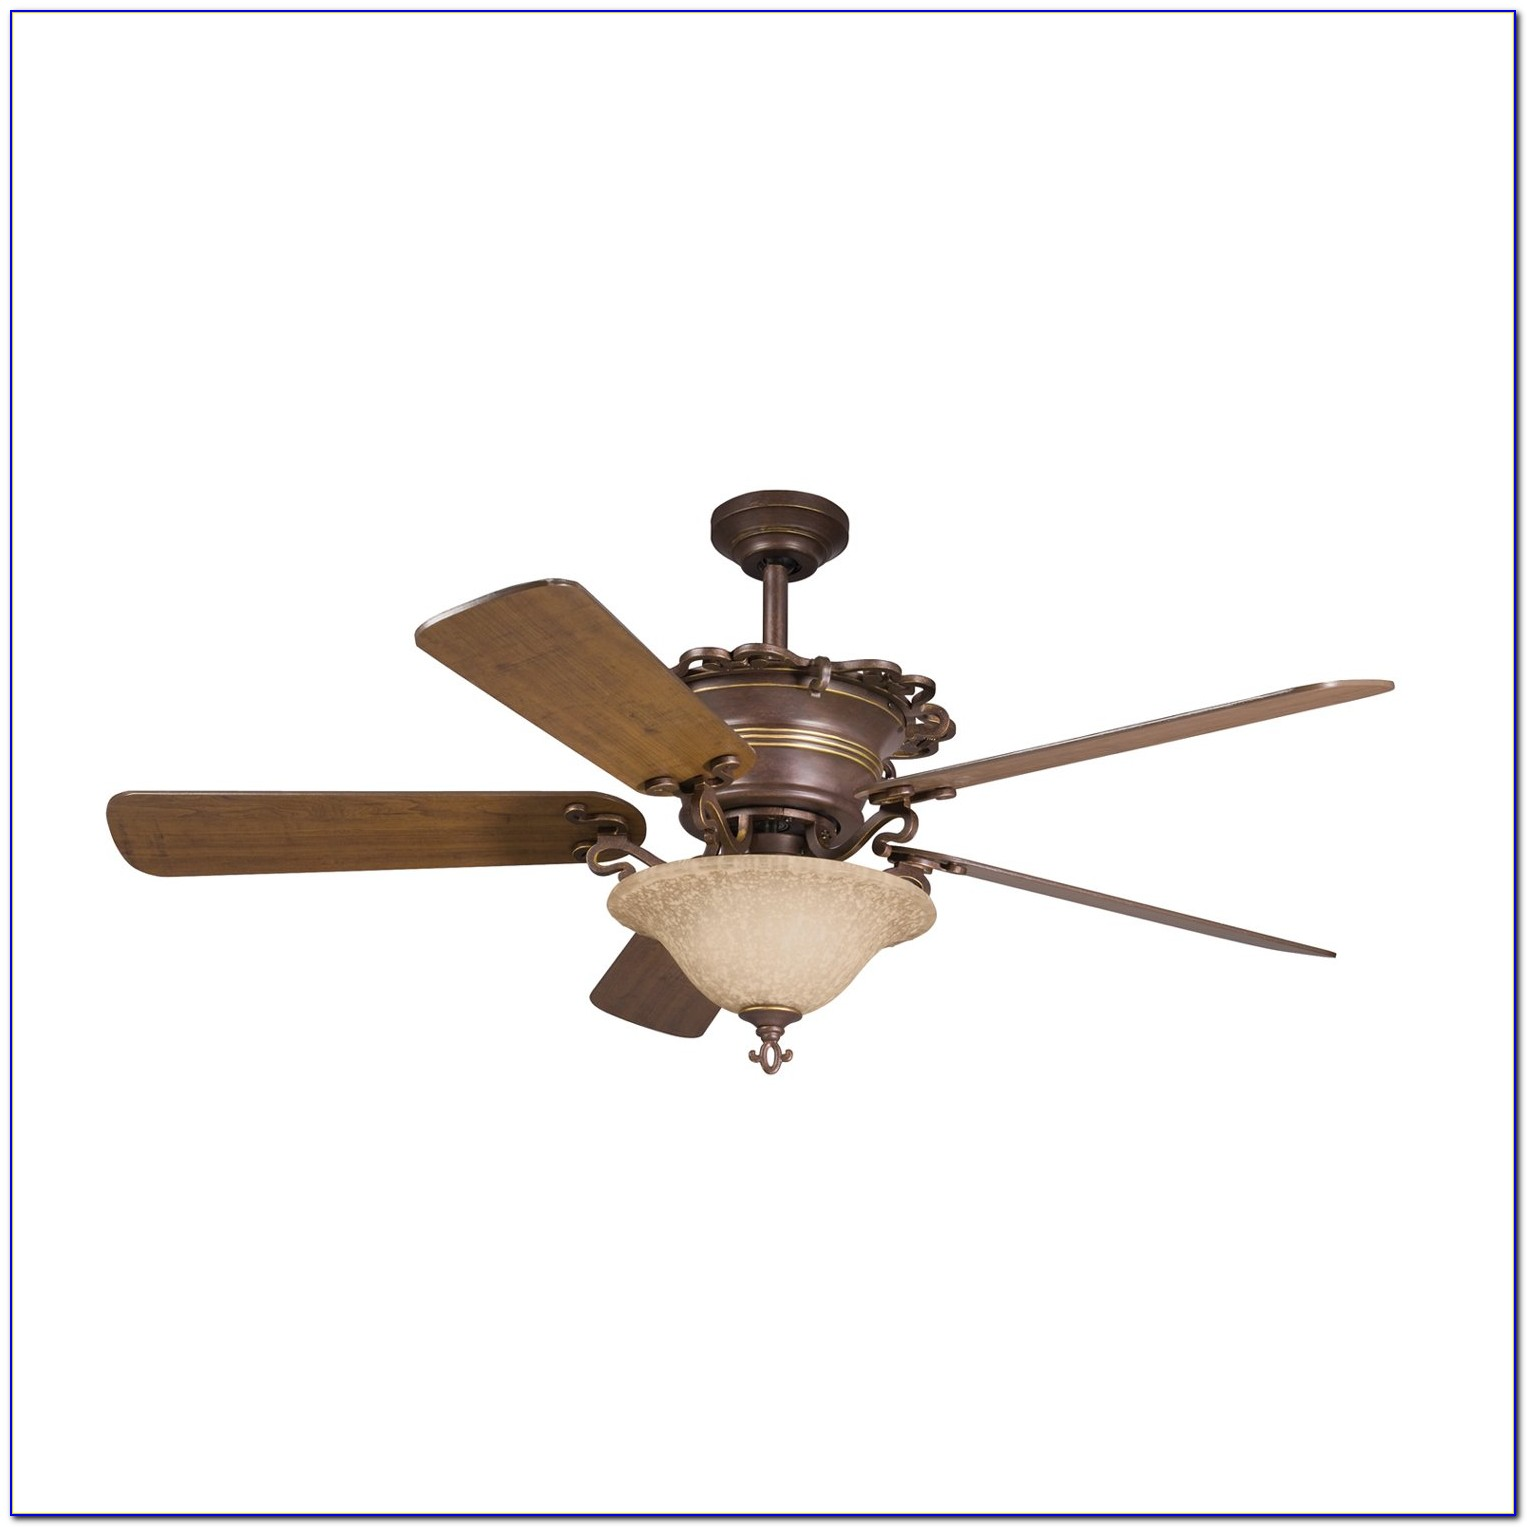 Kichler Ceiling Fan With Light Kit